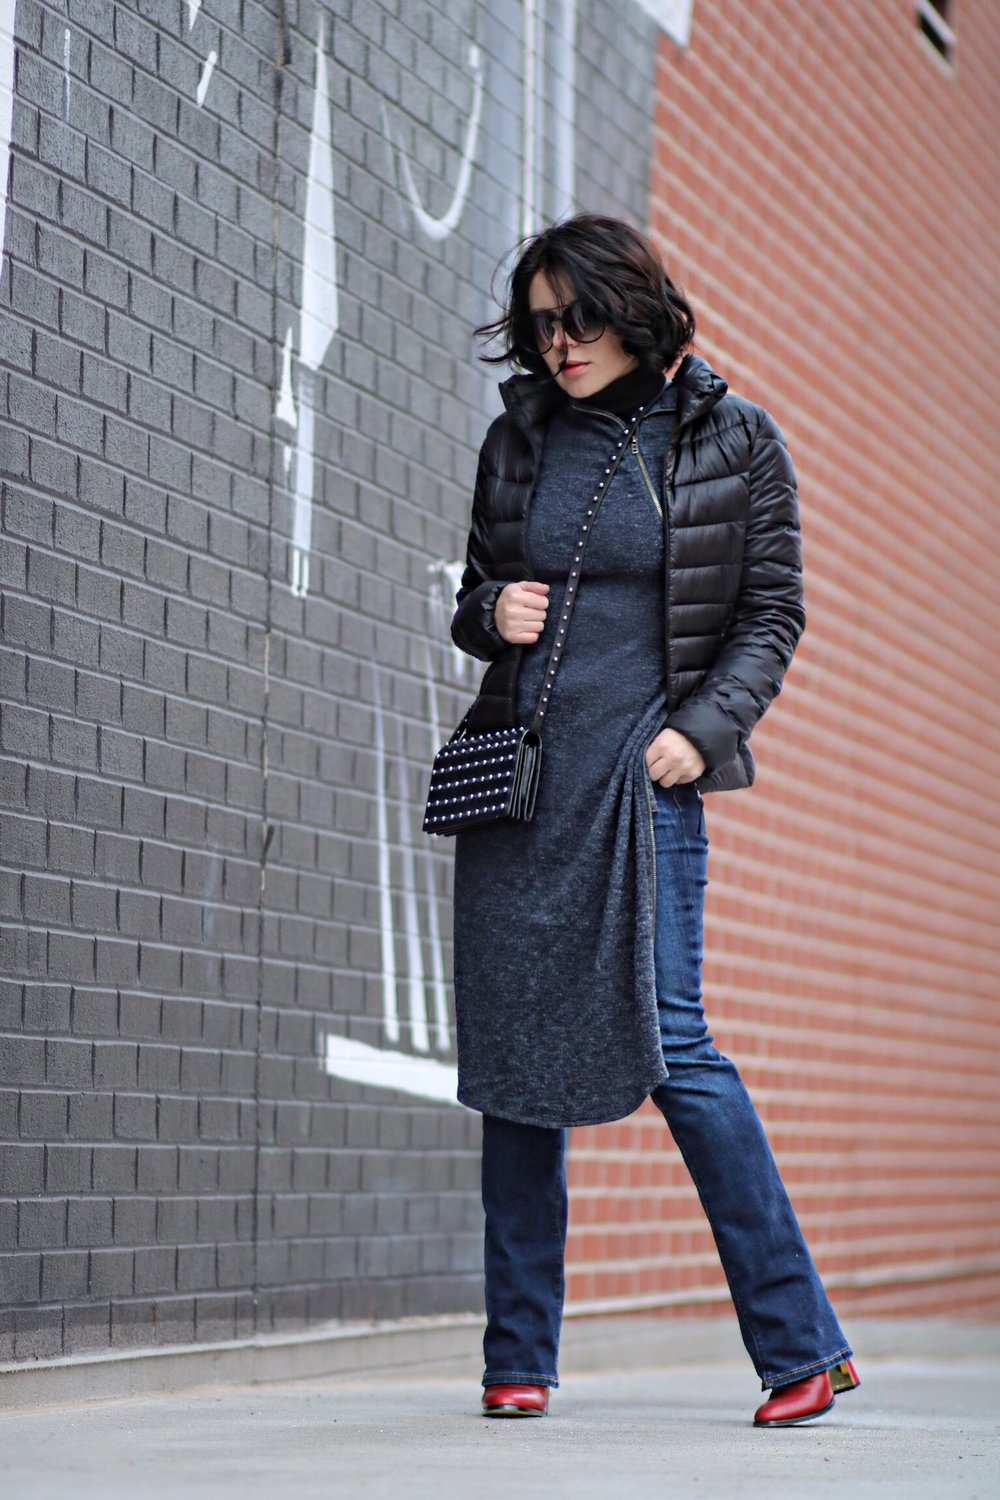 Uniqlo jacket & THML dress layered over LOFT denim